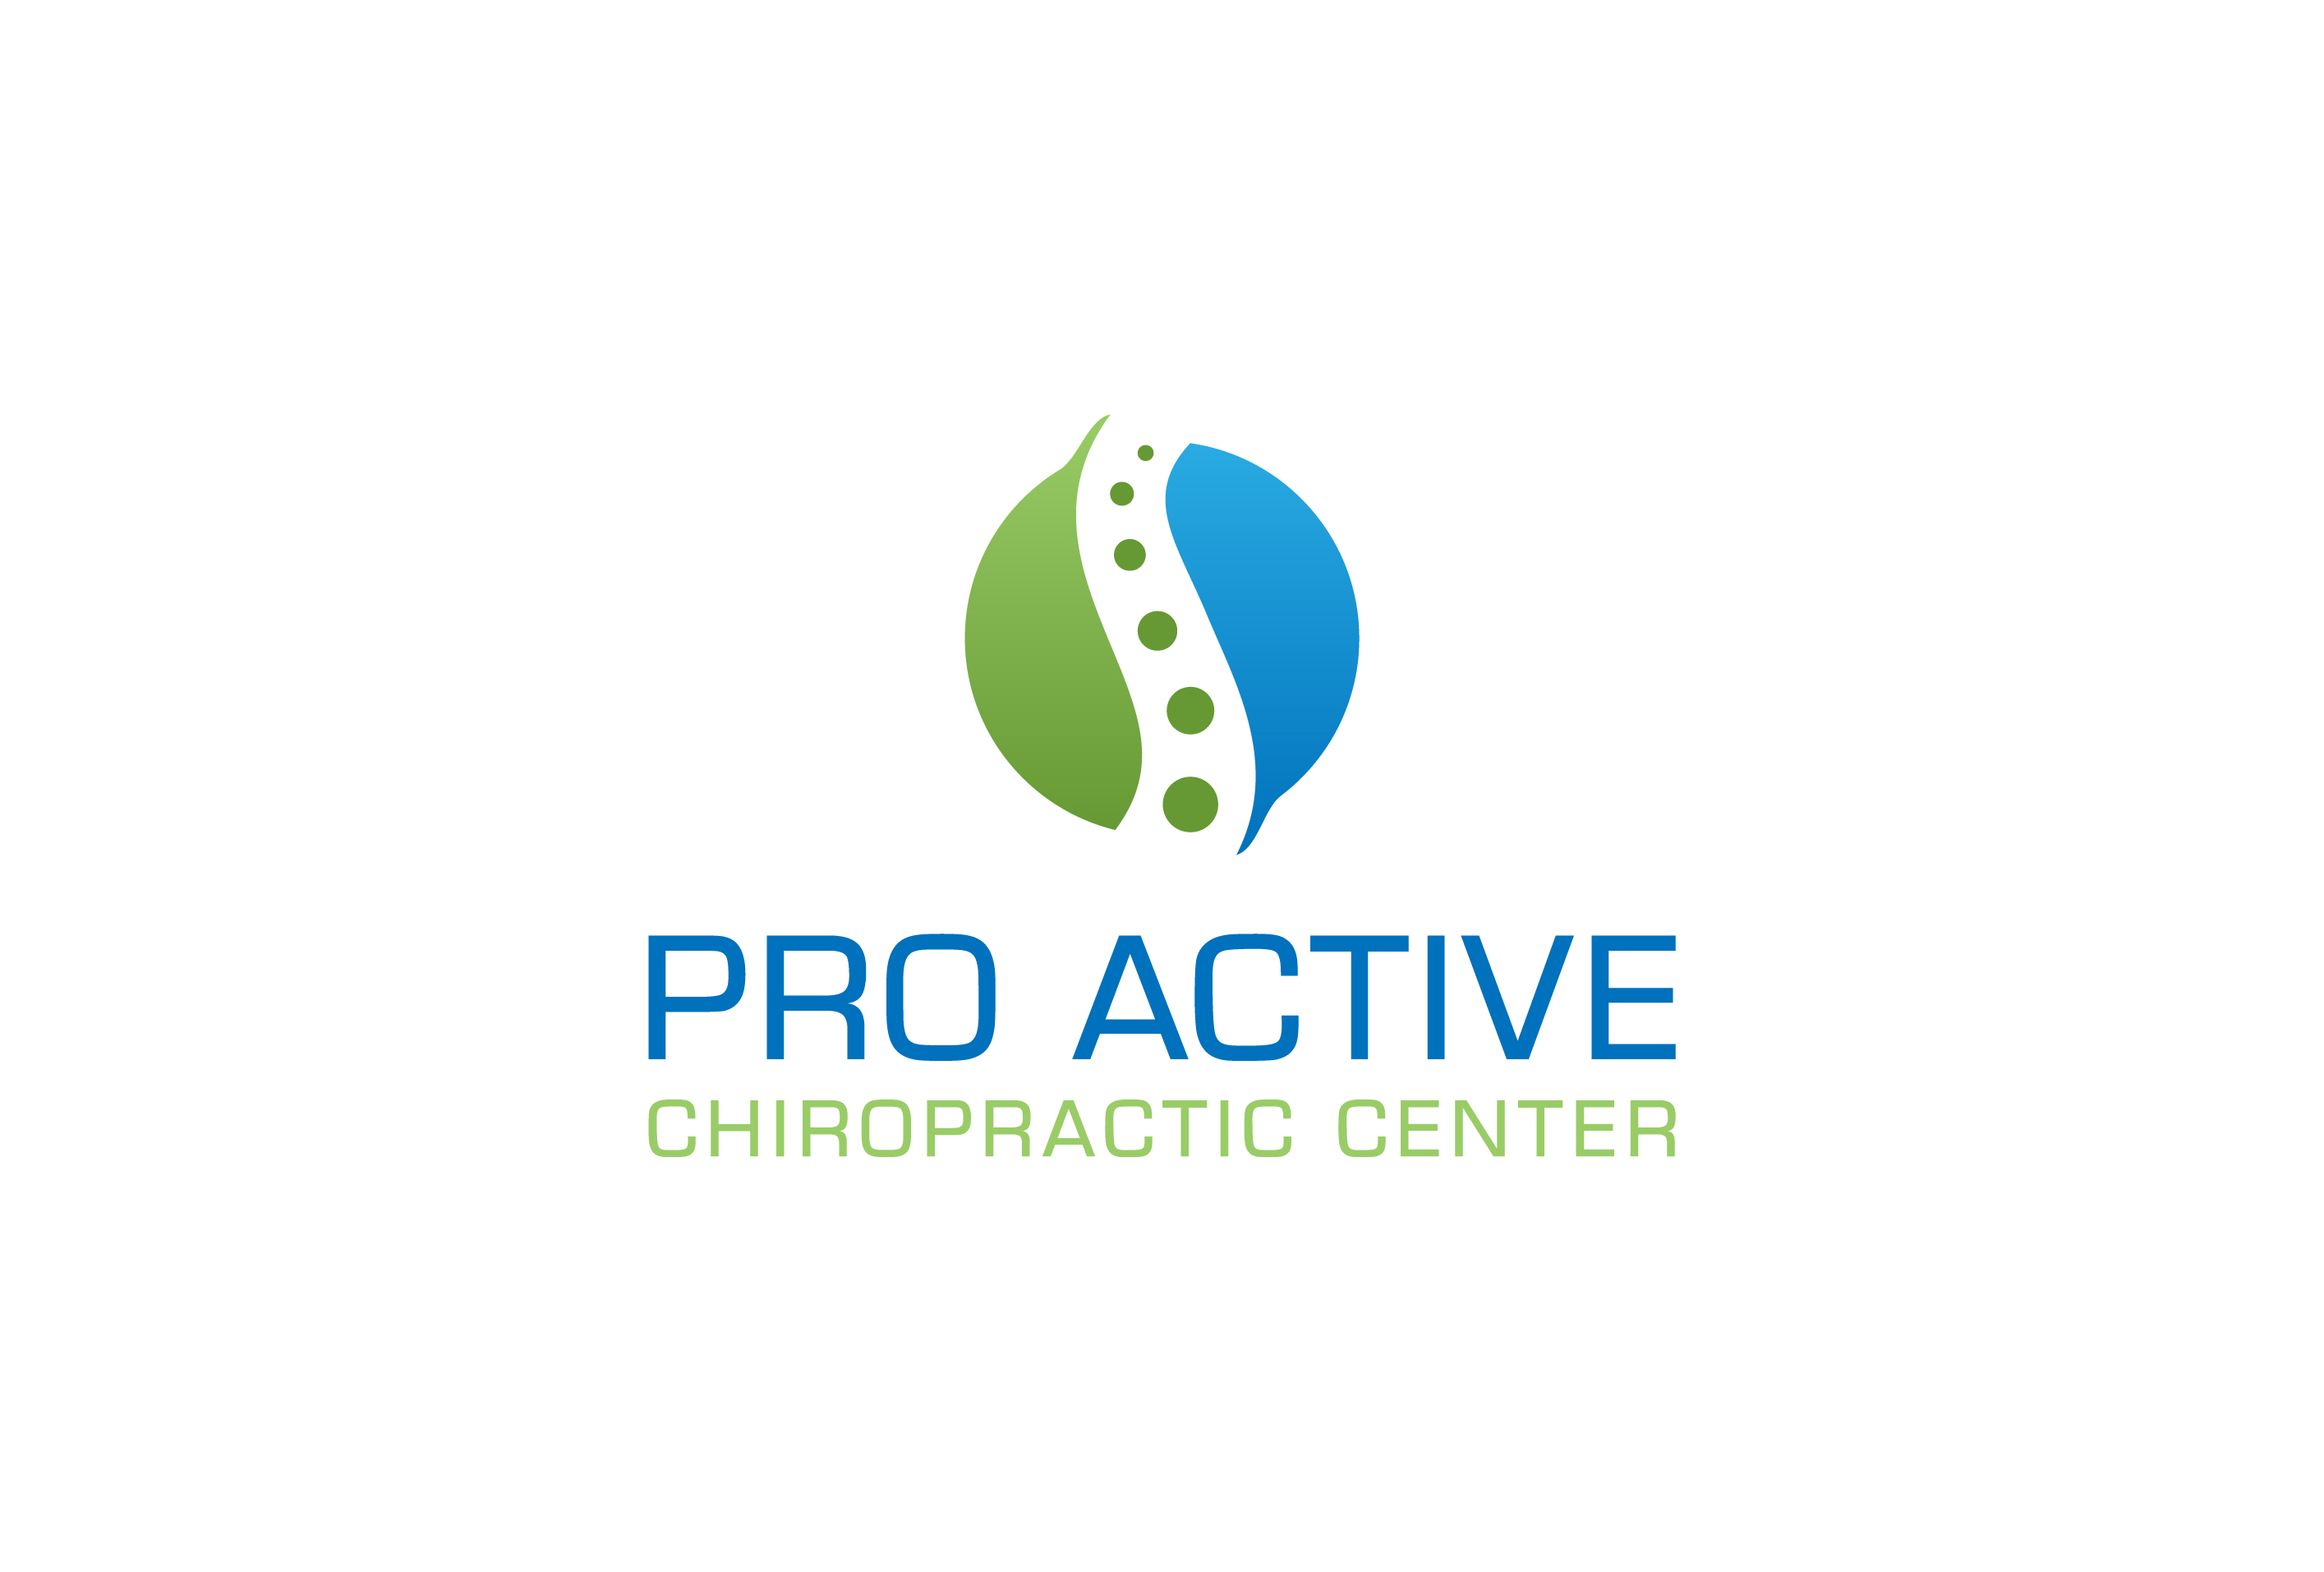 Pro Active Chiropractic Center